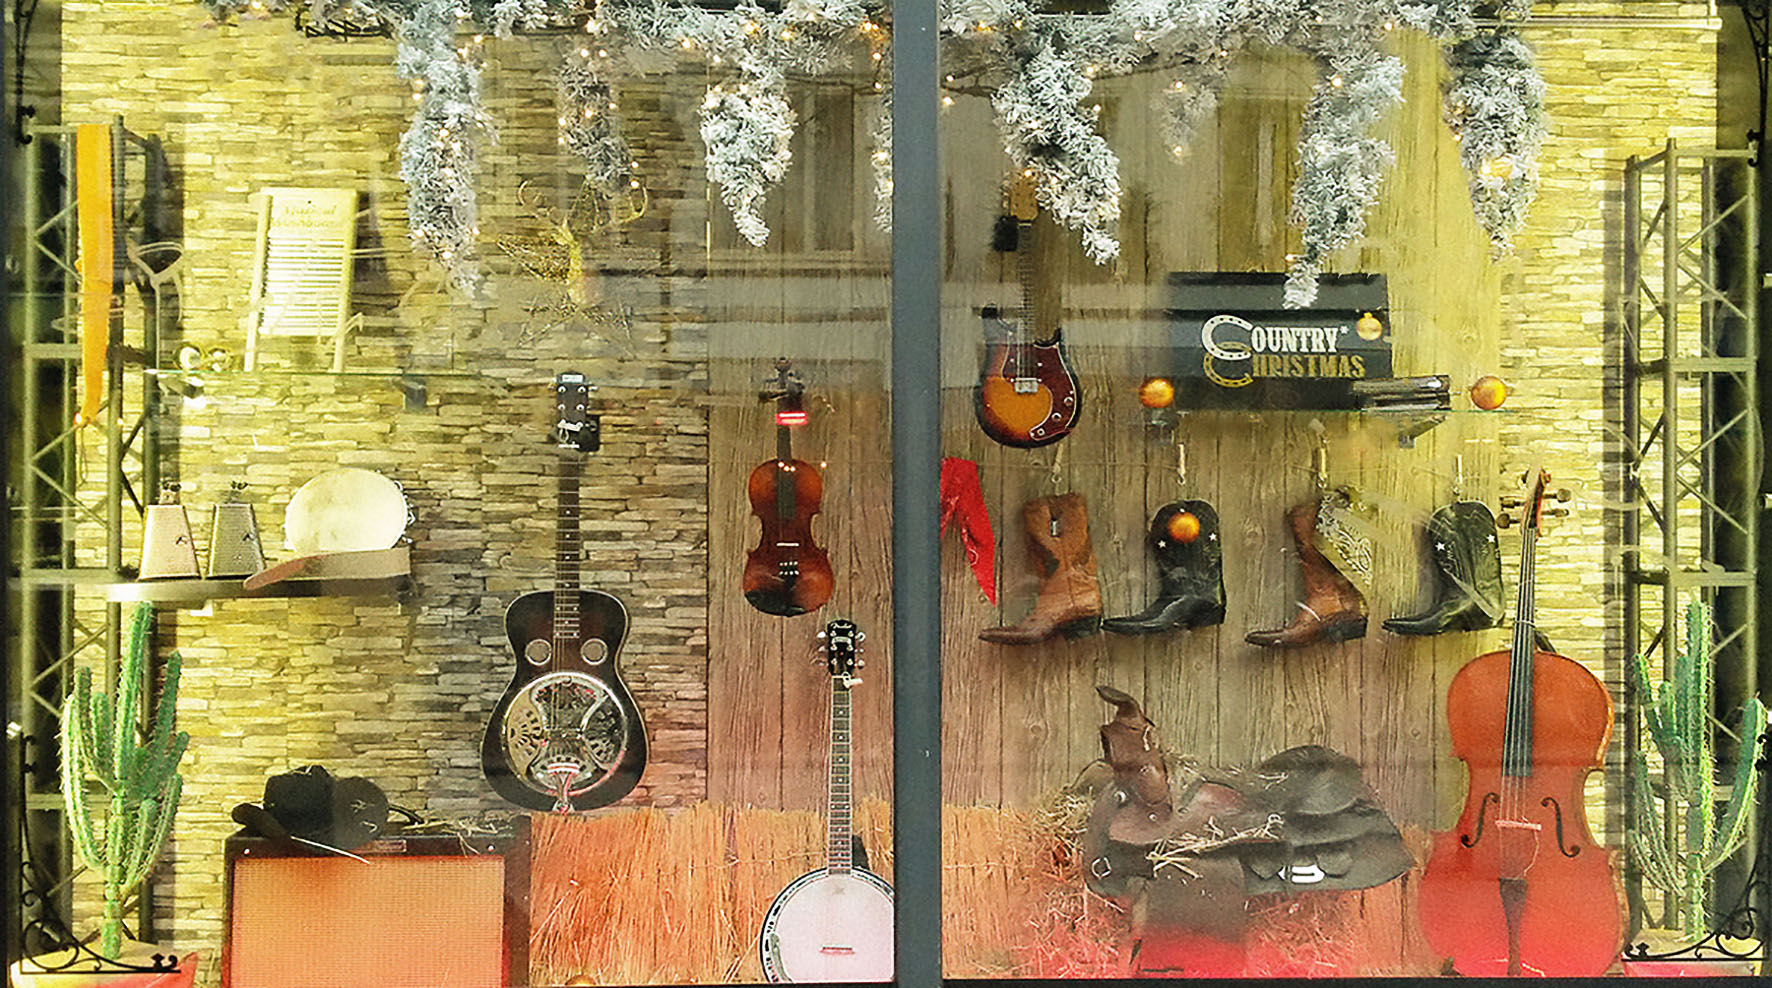 scenographie-vitrine-merchandising-noel-country-cow-boy-magasin-instruments-musique-©roubina-tacorie